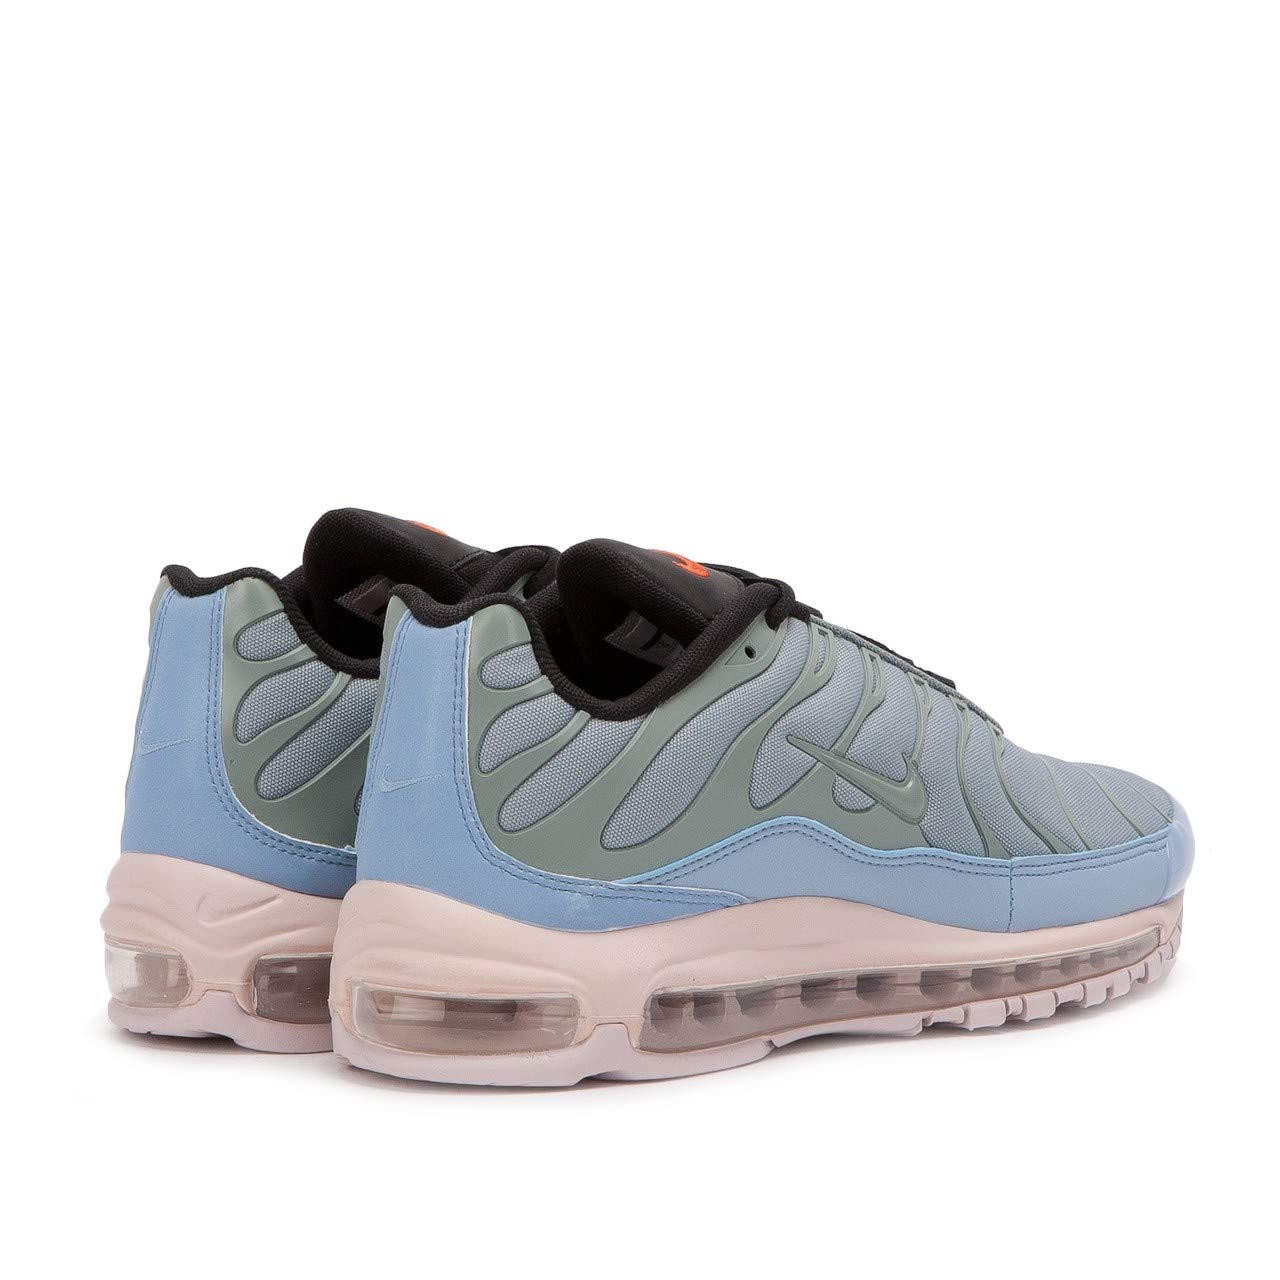 c4e6b899d9 NIKE Kids Air Max 97 / Plus Mica Green/Barley Rose Size 4 – Shoes ...